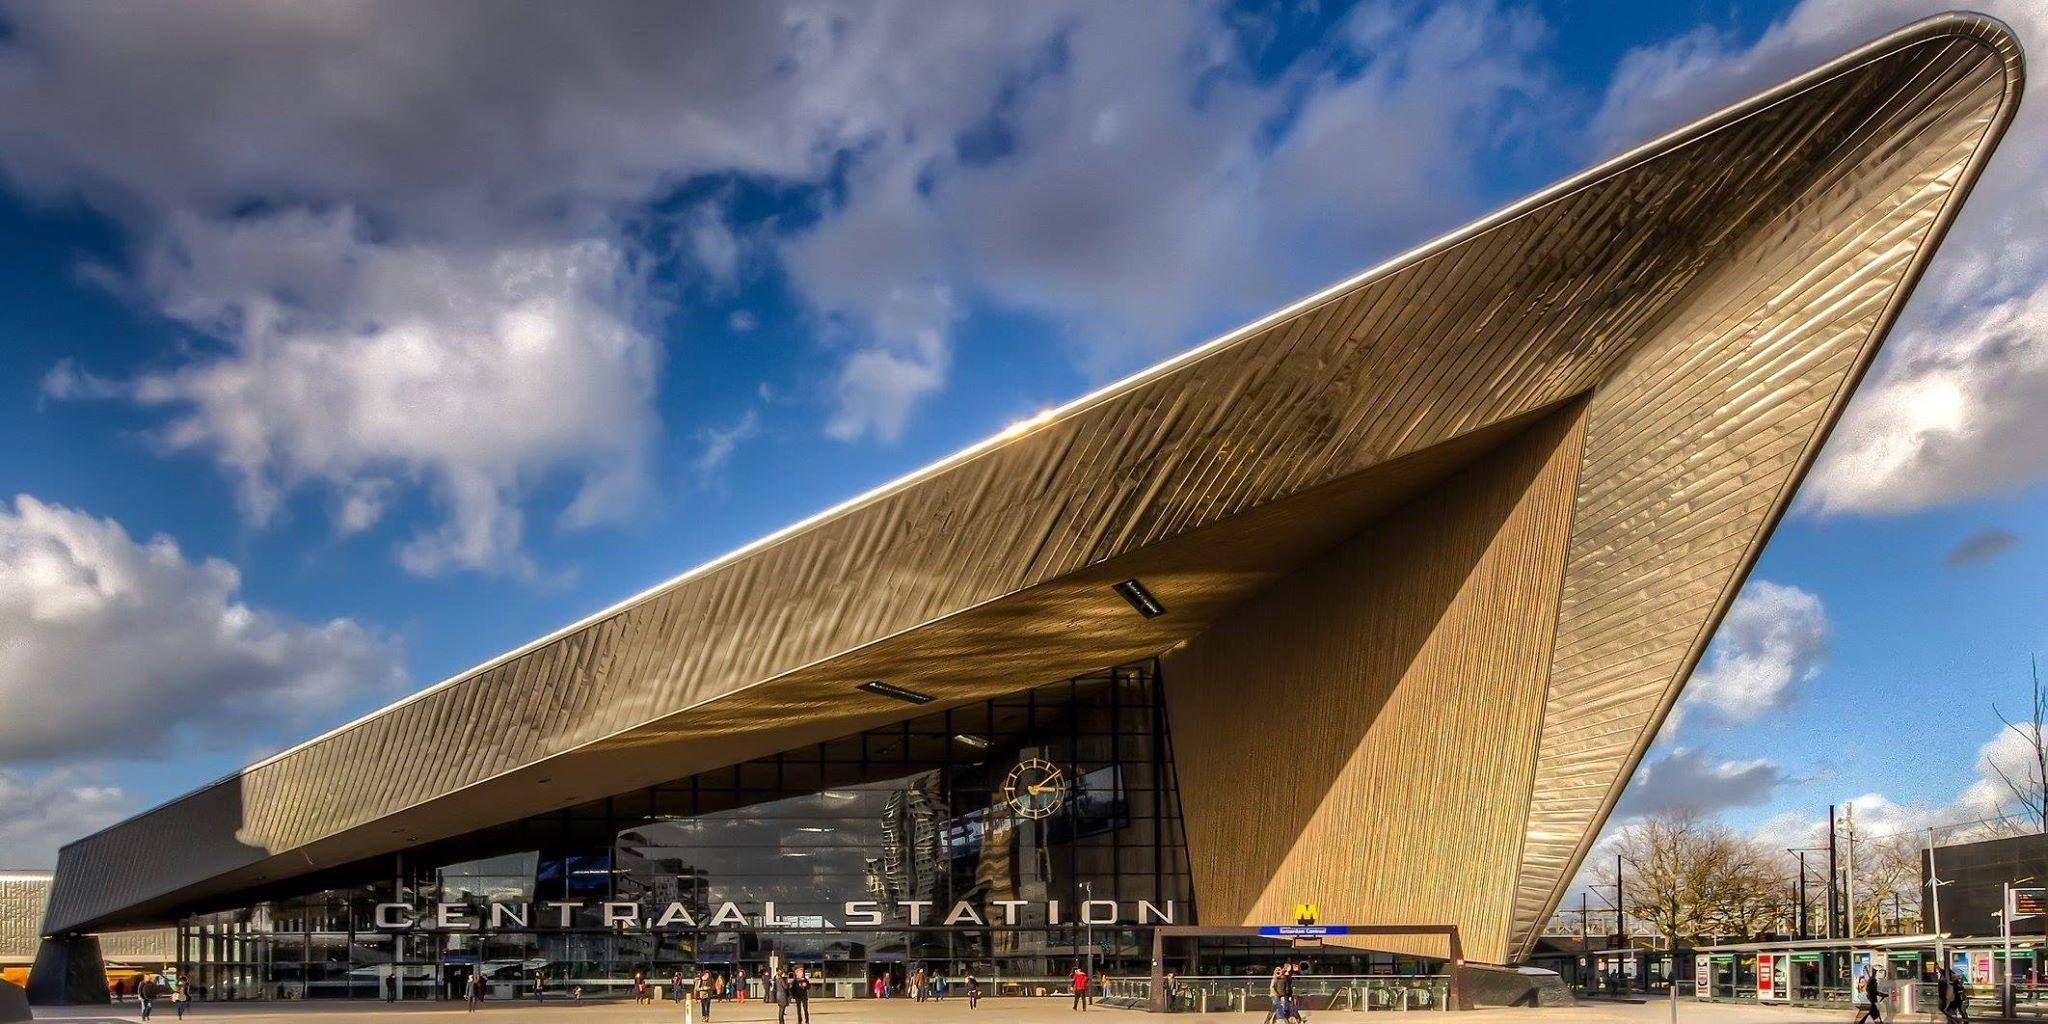 Glamourland centraal station Rotterdam